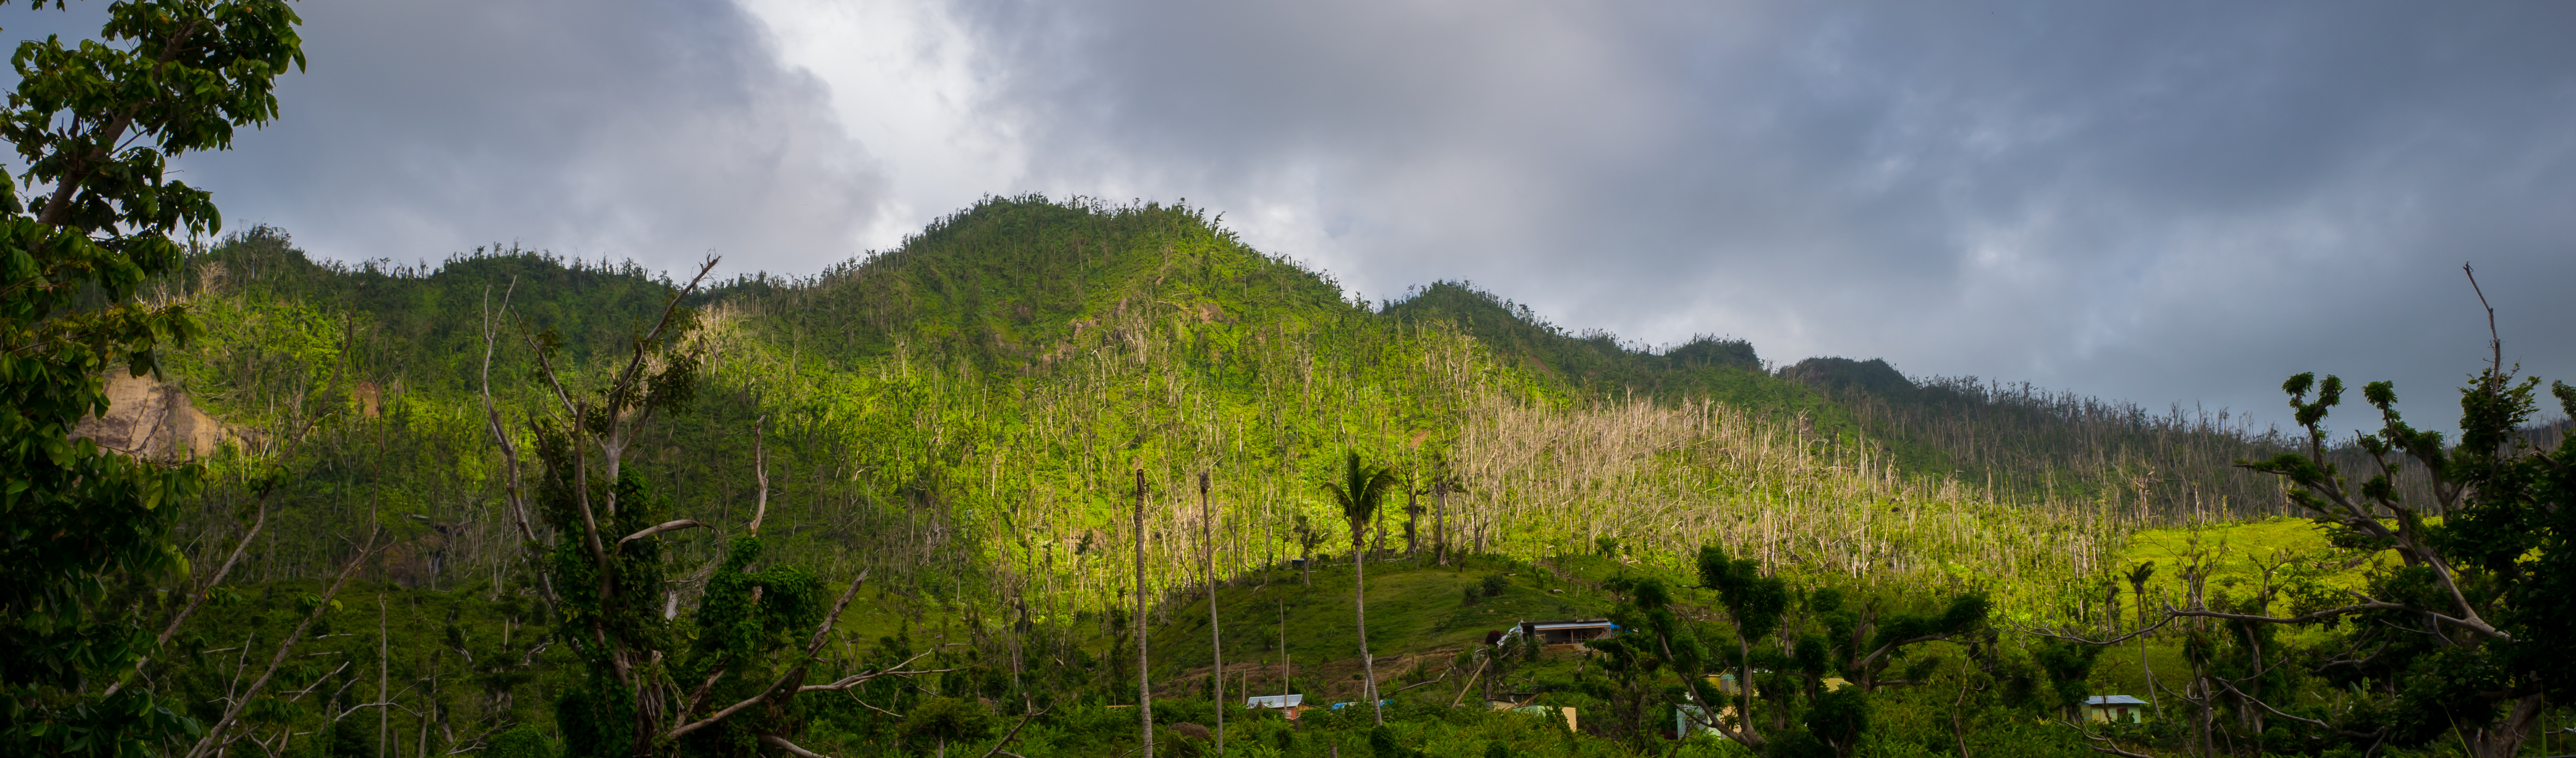 Dominica's woodlands and forests are slowly recovering.